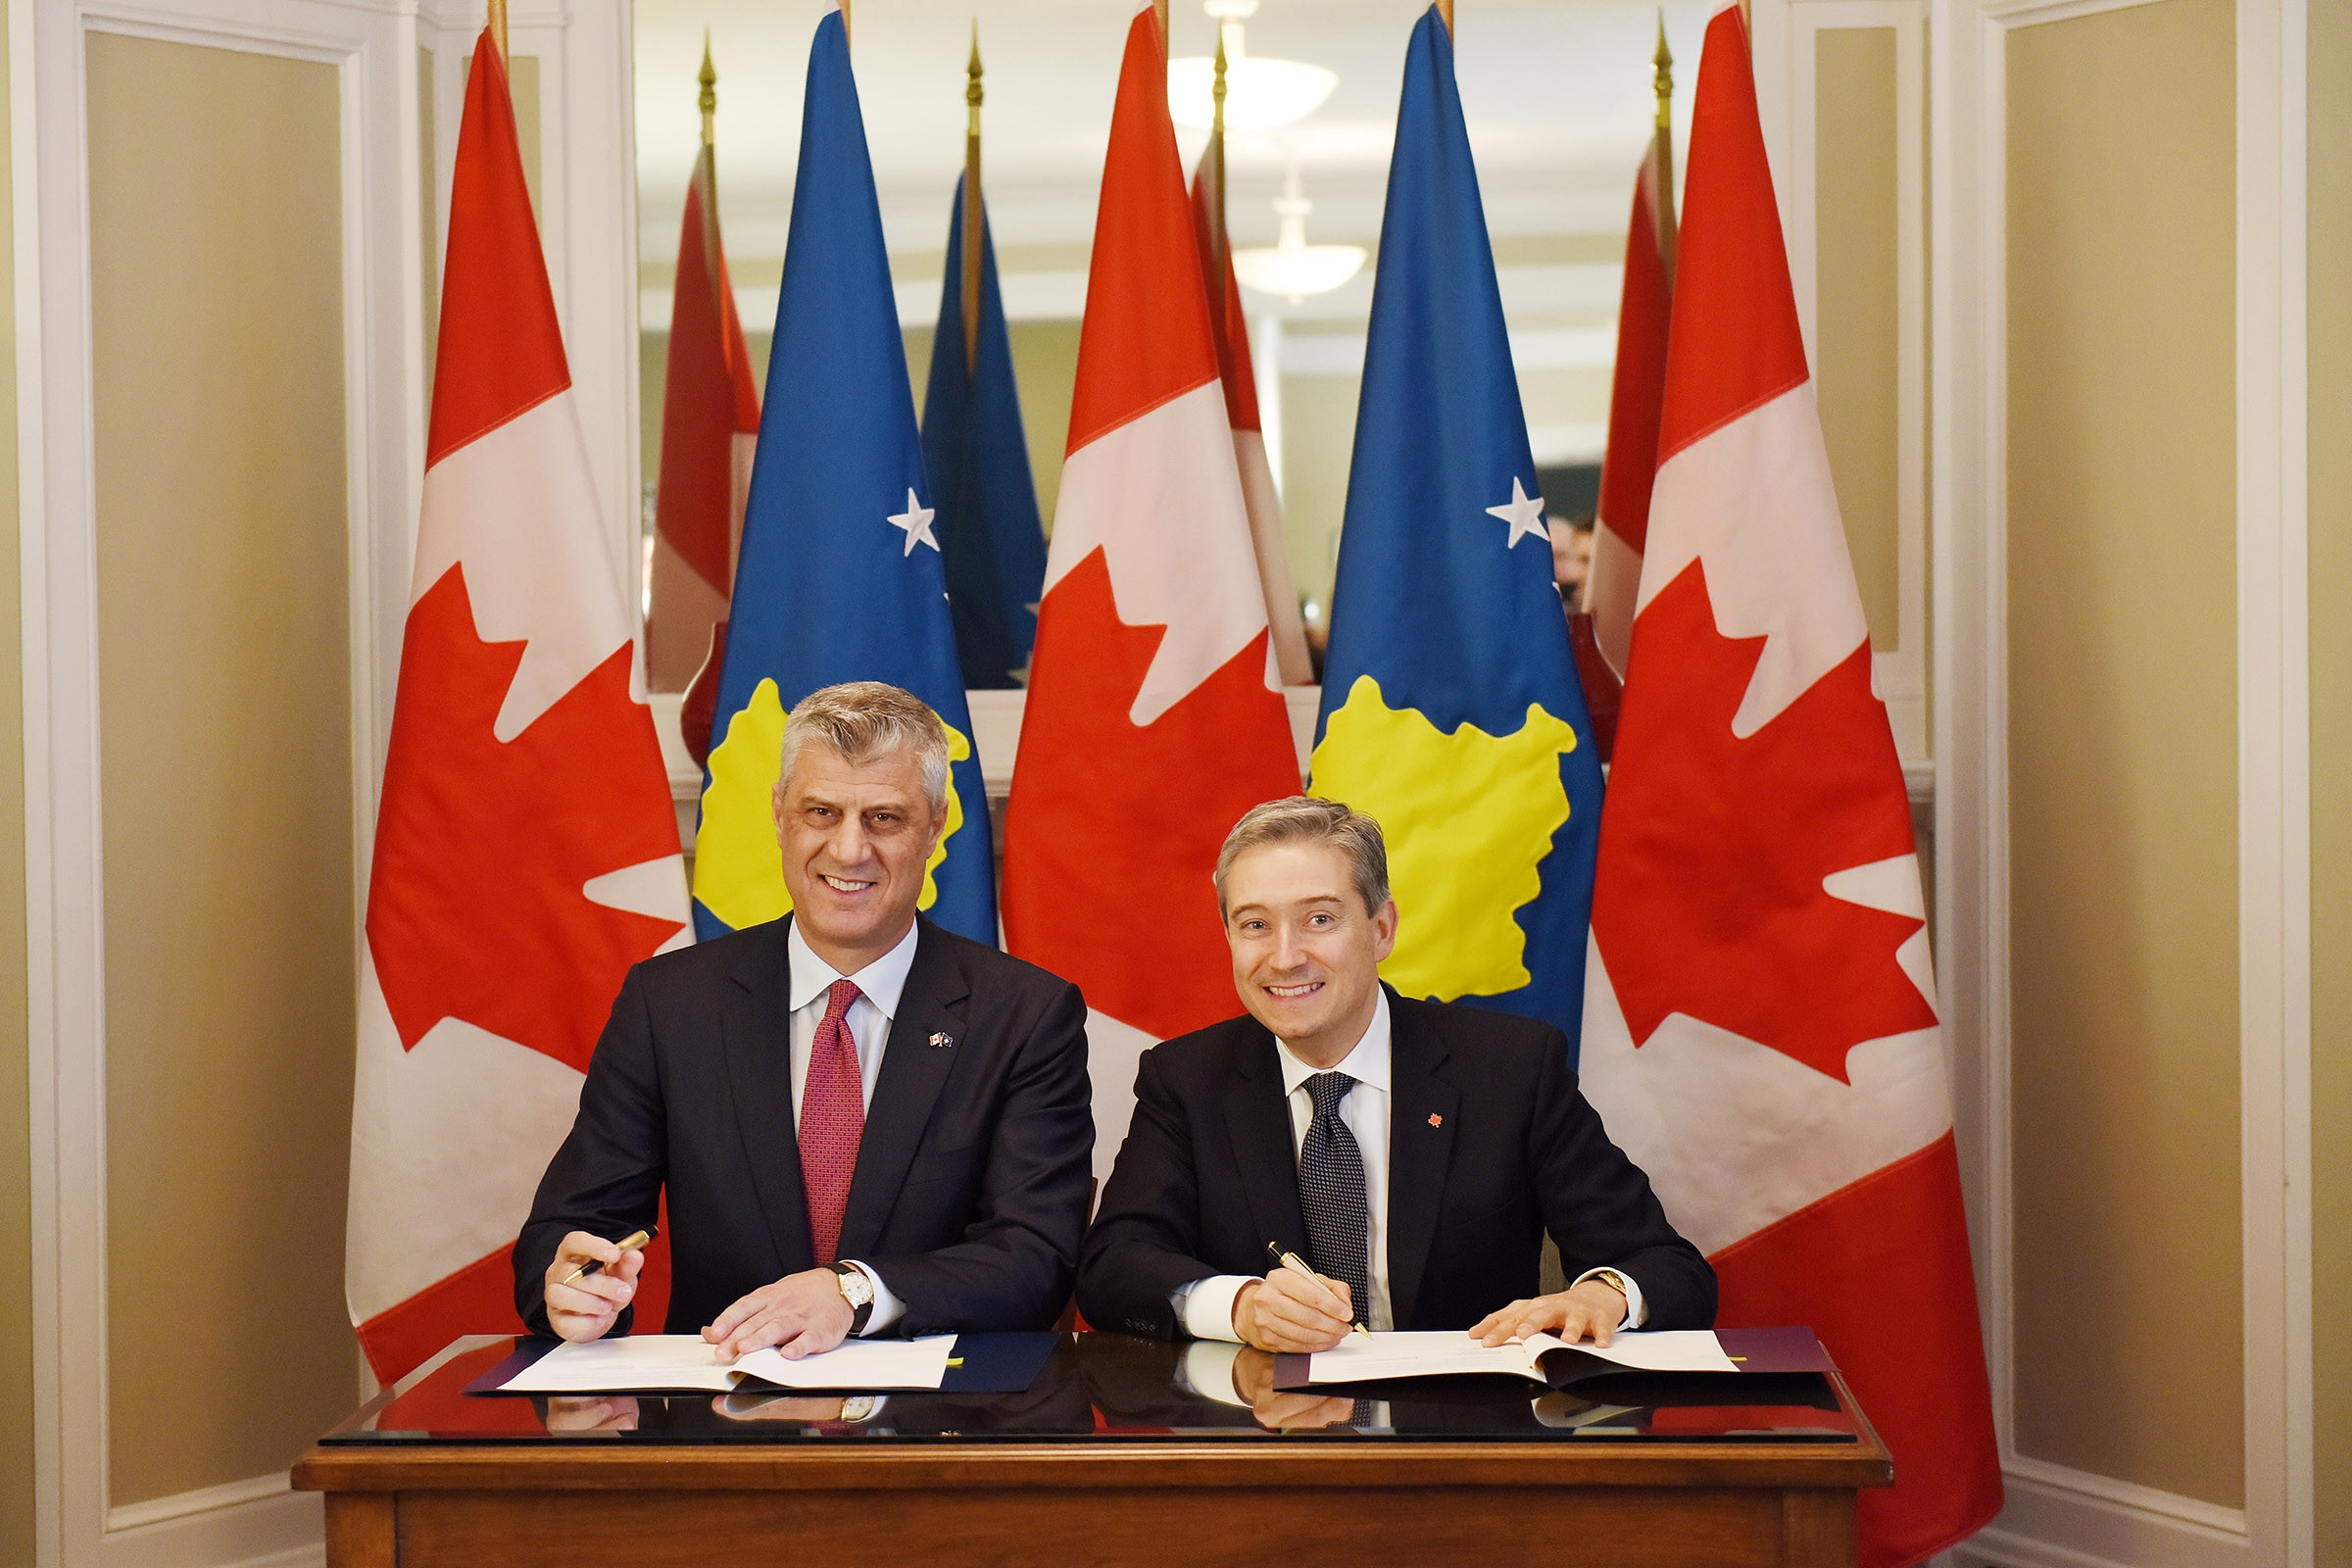 President Thai And The Canadian Minister Sign The Letter Of Good